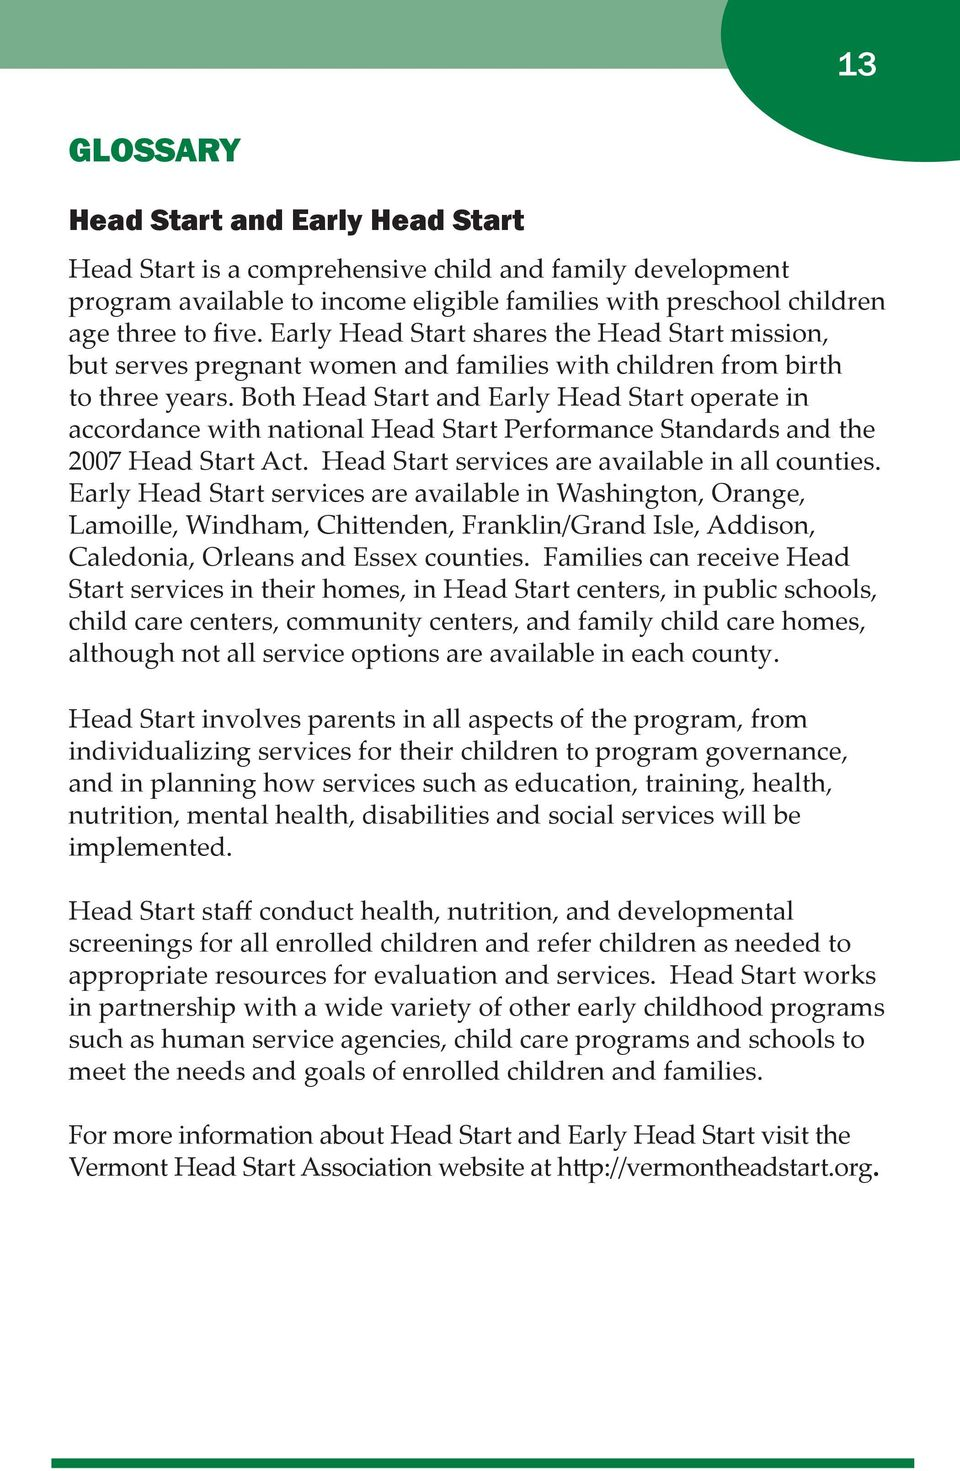 Both Head Start and Early Head Start operate in accordance with national Head Start Performance Standards and the 2007 Head Start Act. Head Start services are available in all counties.